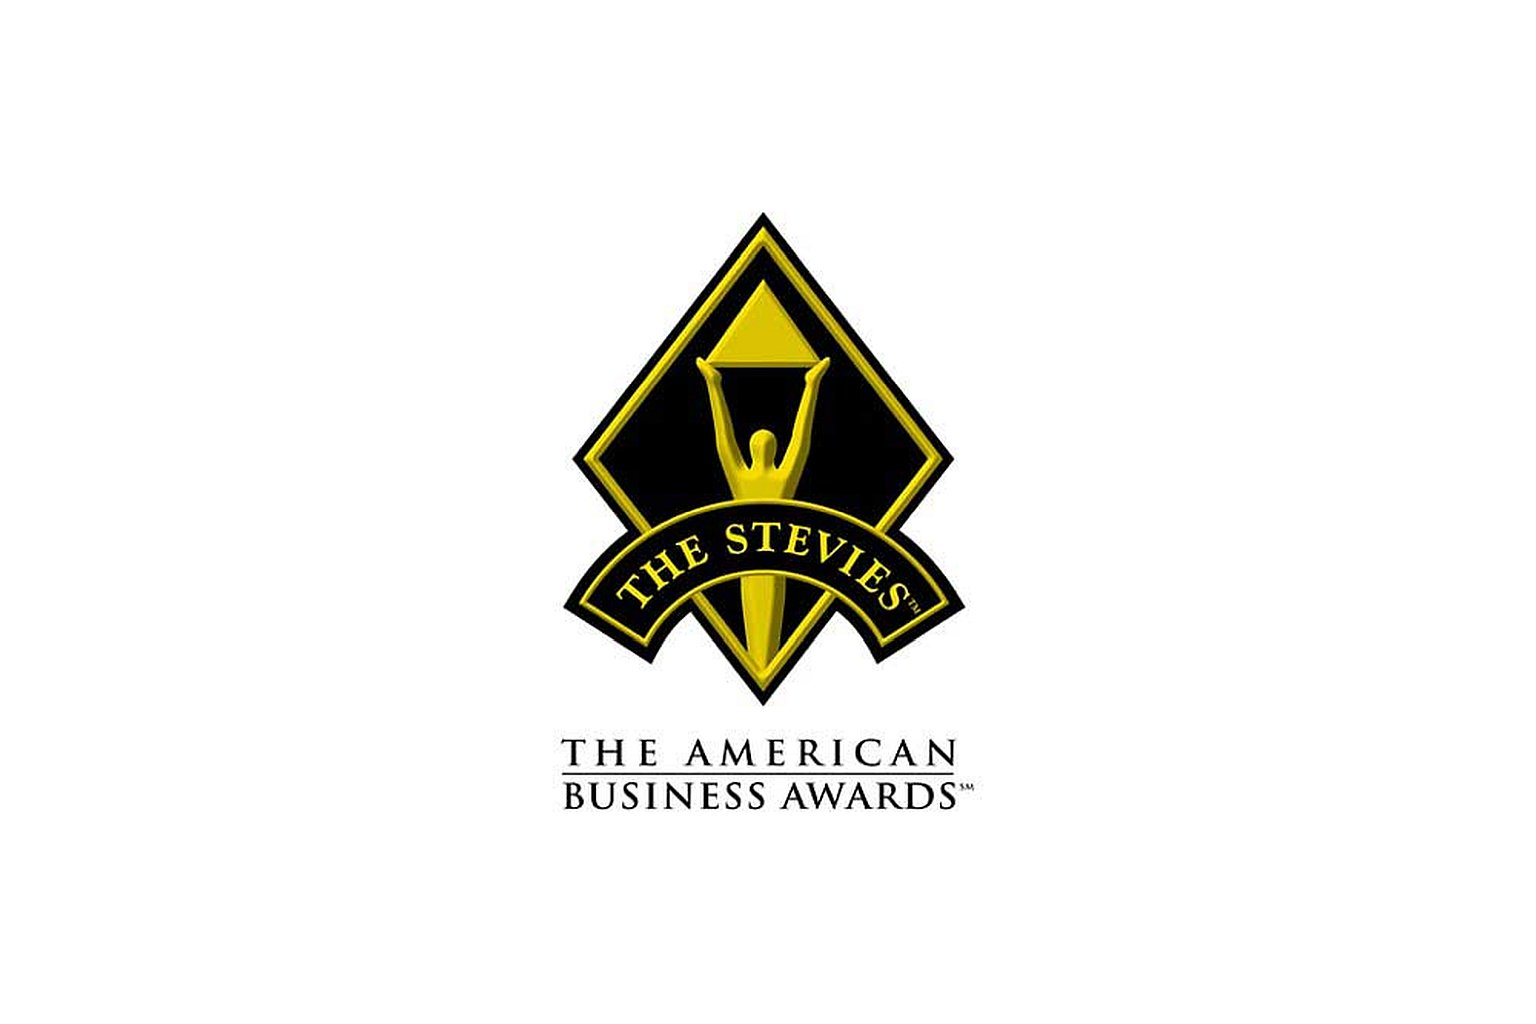 CT Corporation wins Stevie Award for CT Assurance